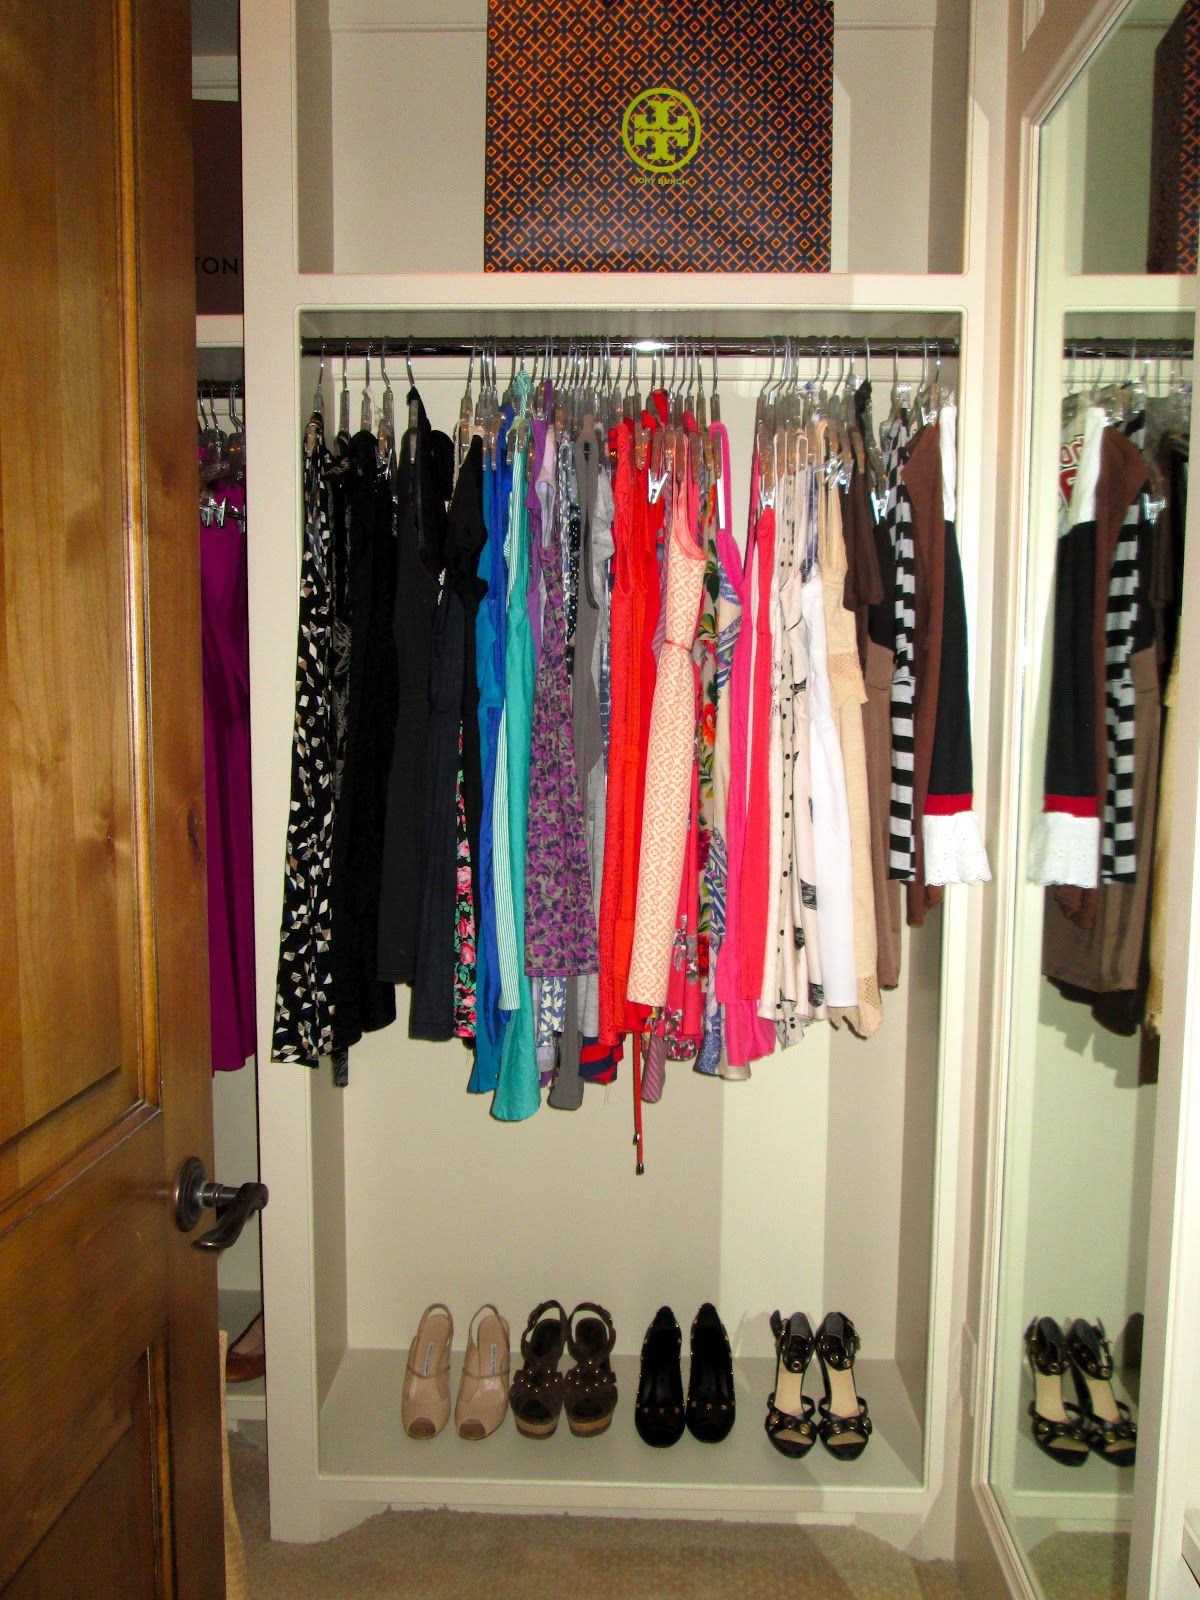 Functional closet organization ideas for small space Small closet shelving ideas